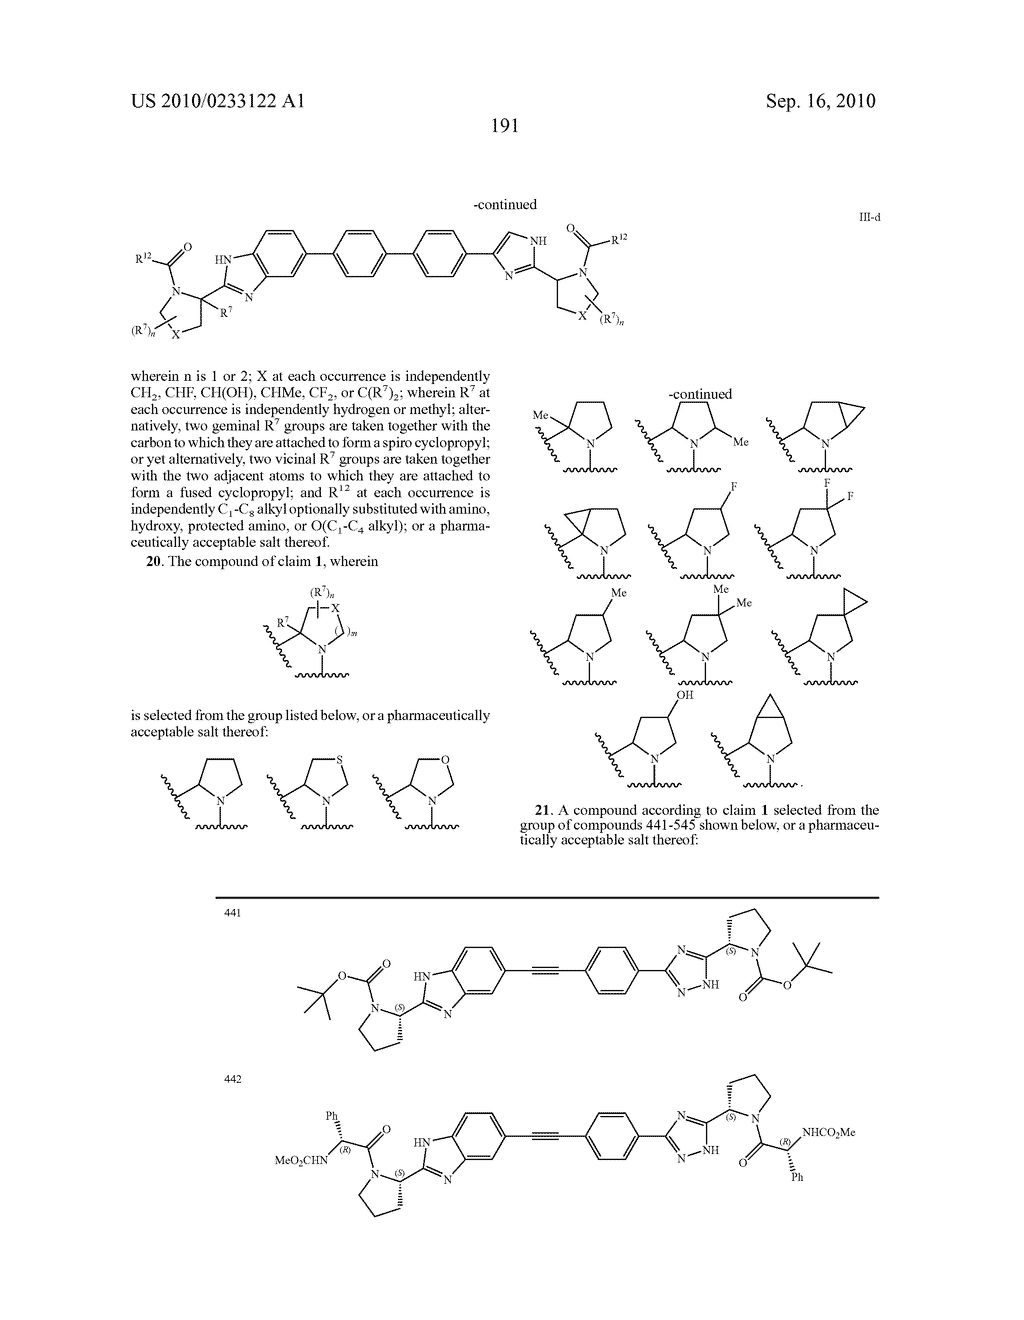 NOVEL BENZIMIDAZOLE DERIVATIVES - diagram, schematic, and image 192